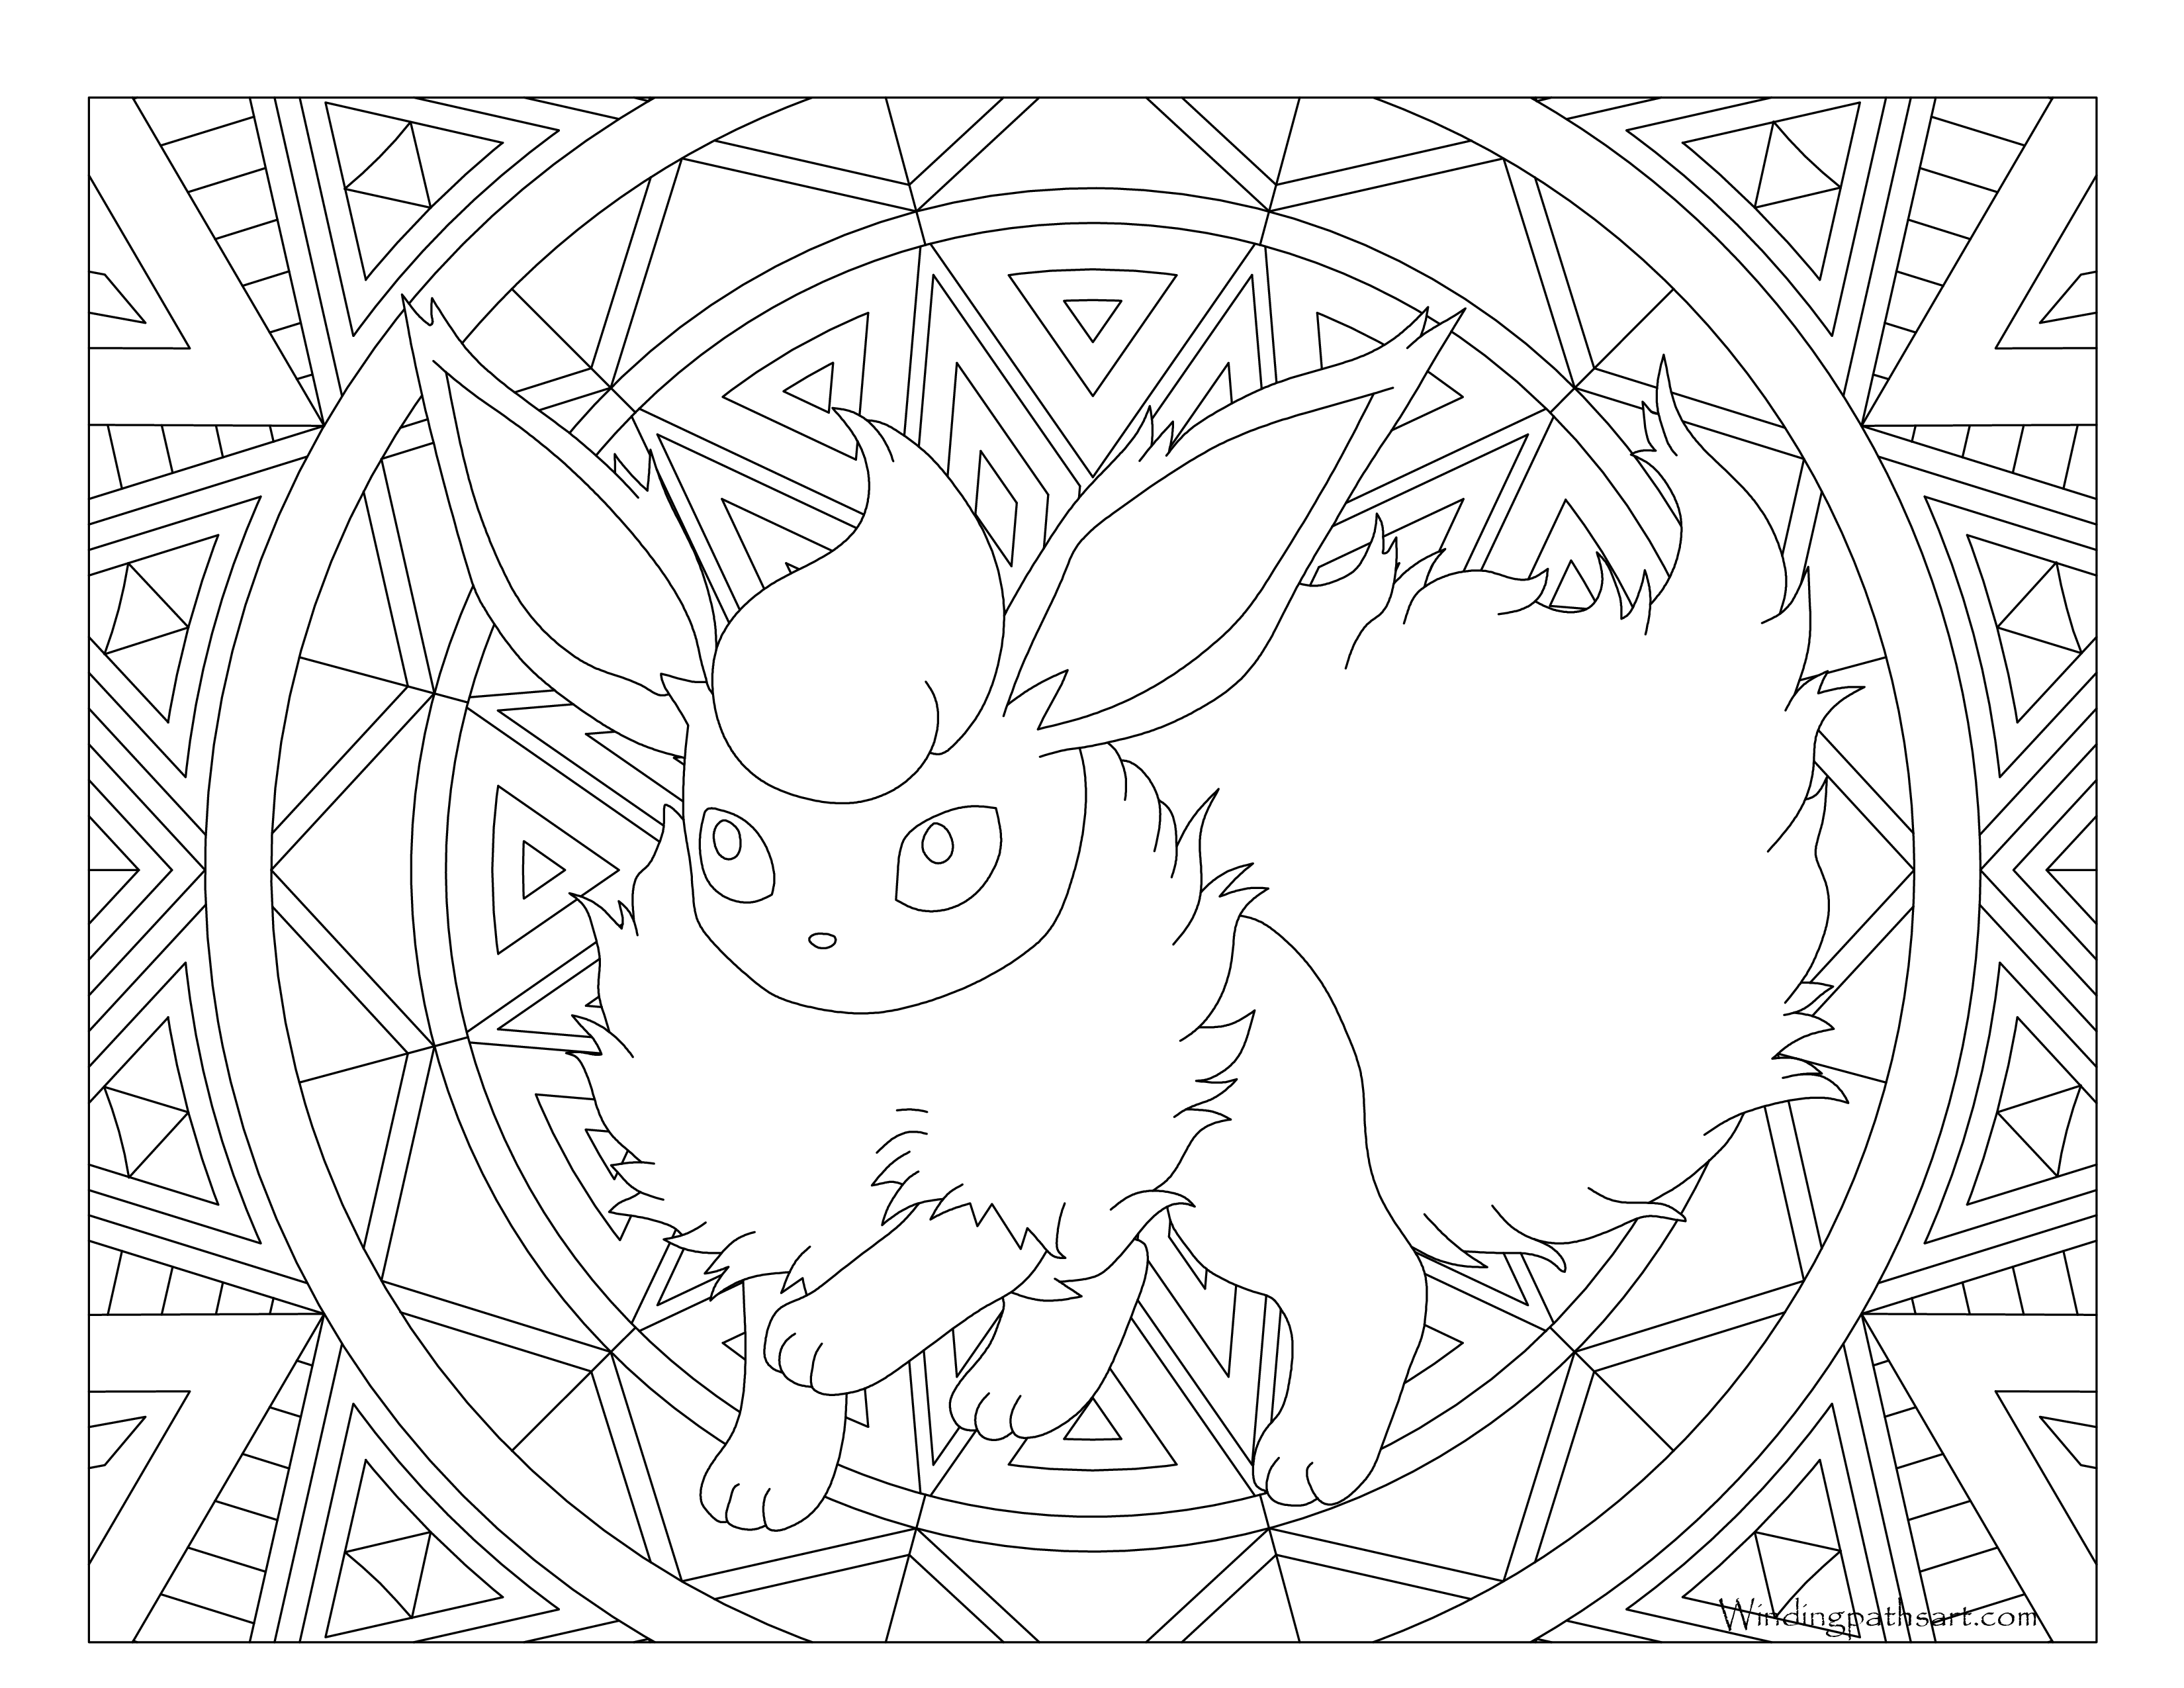 flareon pokemon coloring page flareon coloring page coloring pages page flareon coloring pokemon